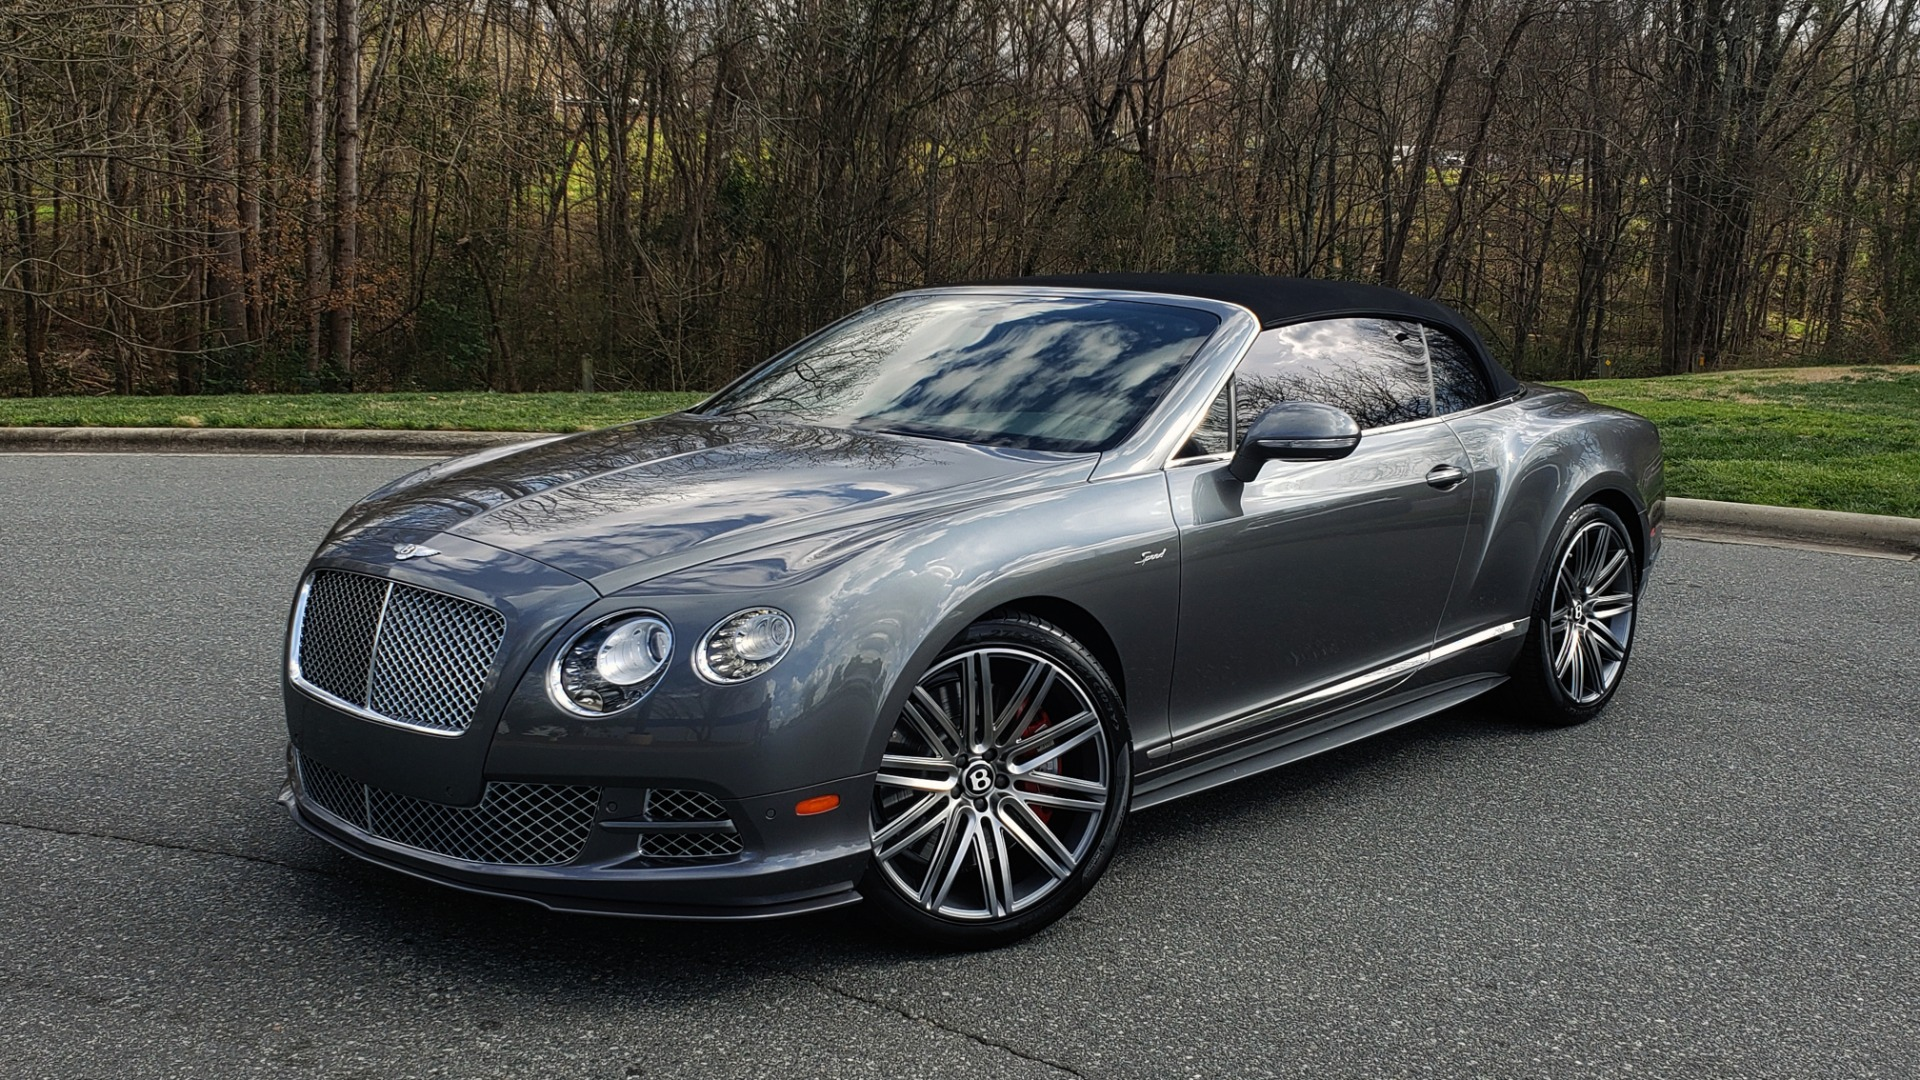 Used 2015 Bentley CONTINENTAL SPEED CONV / 6.0L W12 / NAV / VENT SEATS / REARVIEW for sale Sold at Formula Imports in Charlotte NC 28227 2